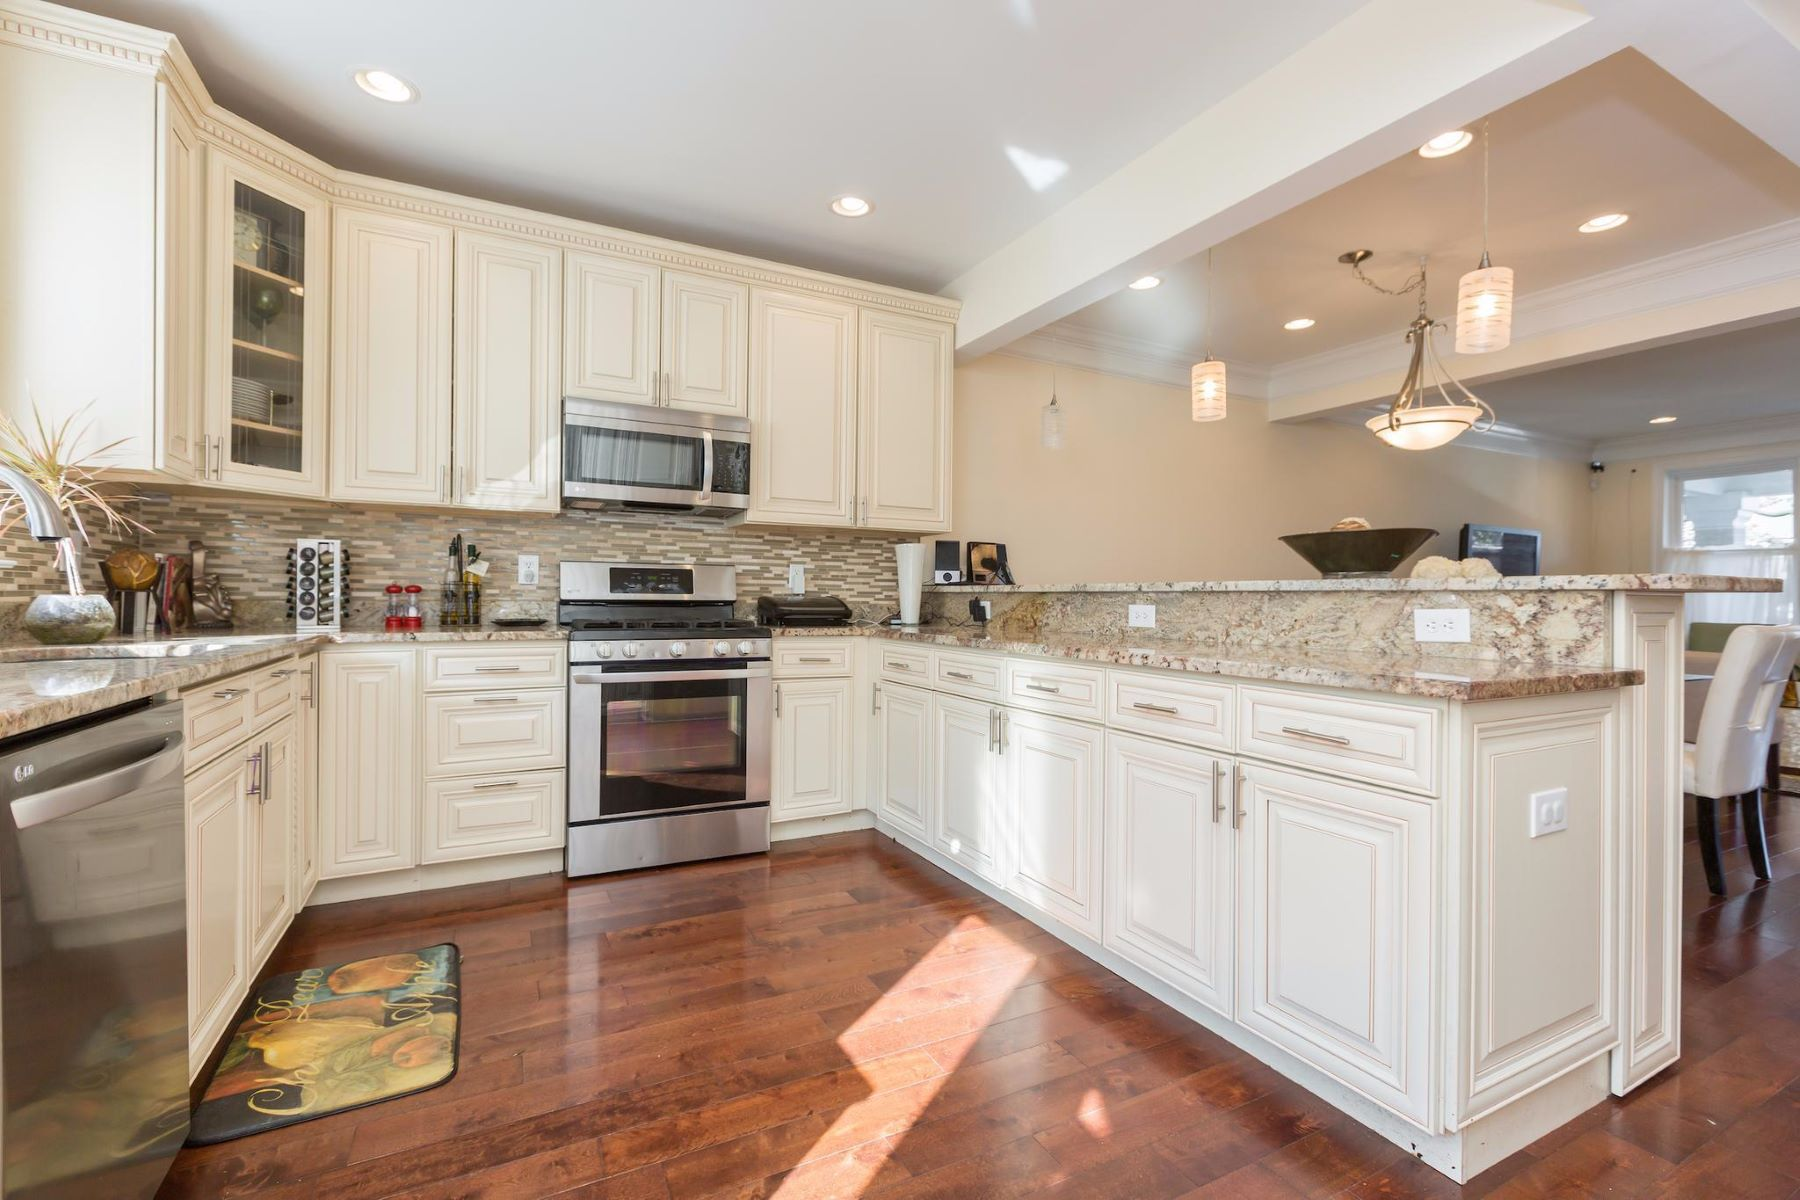 Additional photo for property listing at 310 Emerson St Nw 310 Emerson St Nw Washington, District Of Columbia 20011 United States